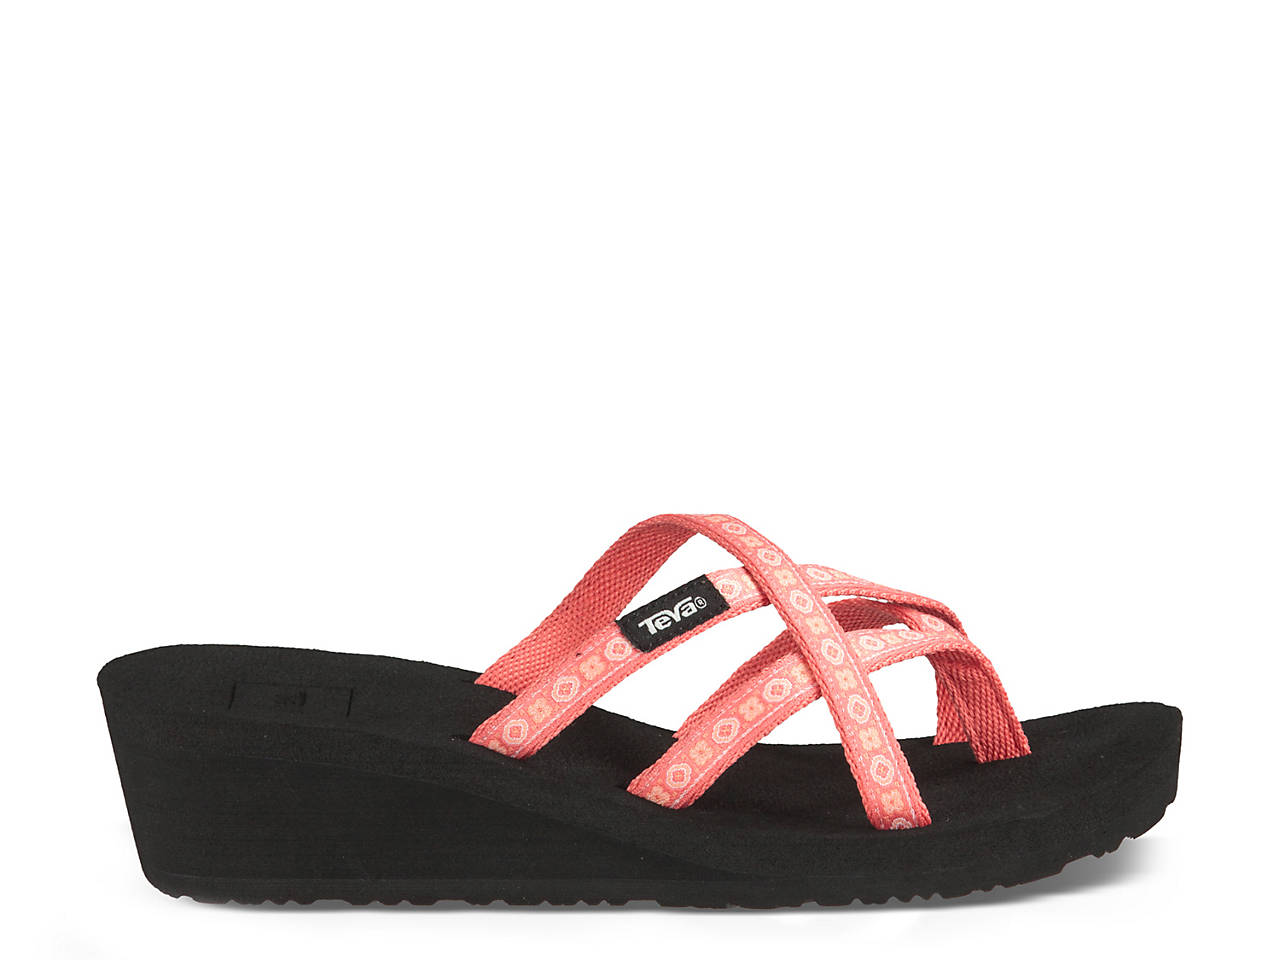 Teva Mush Mandalyn Ola Ii Wedge Flip Flop Womens Shoes  Dsw-3041